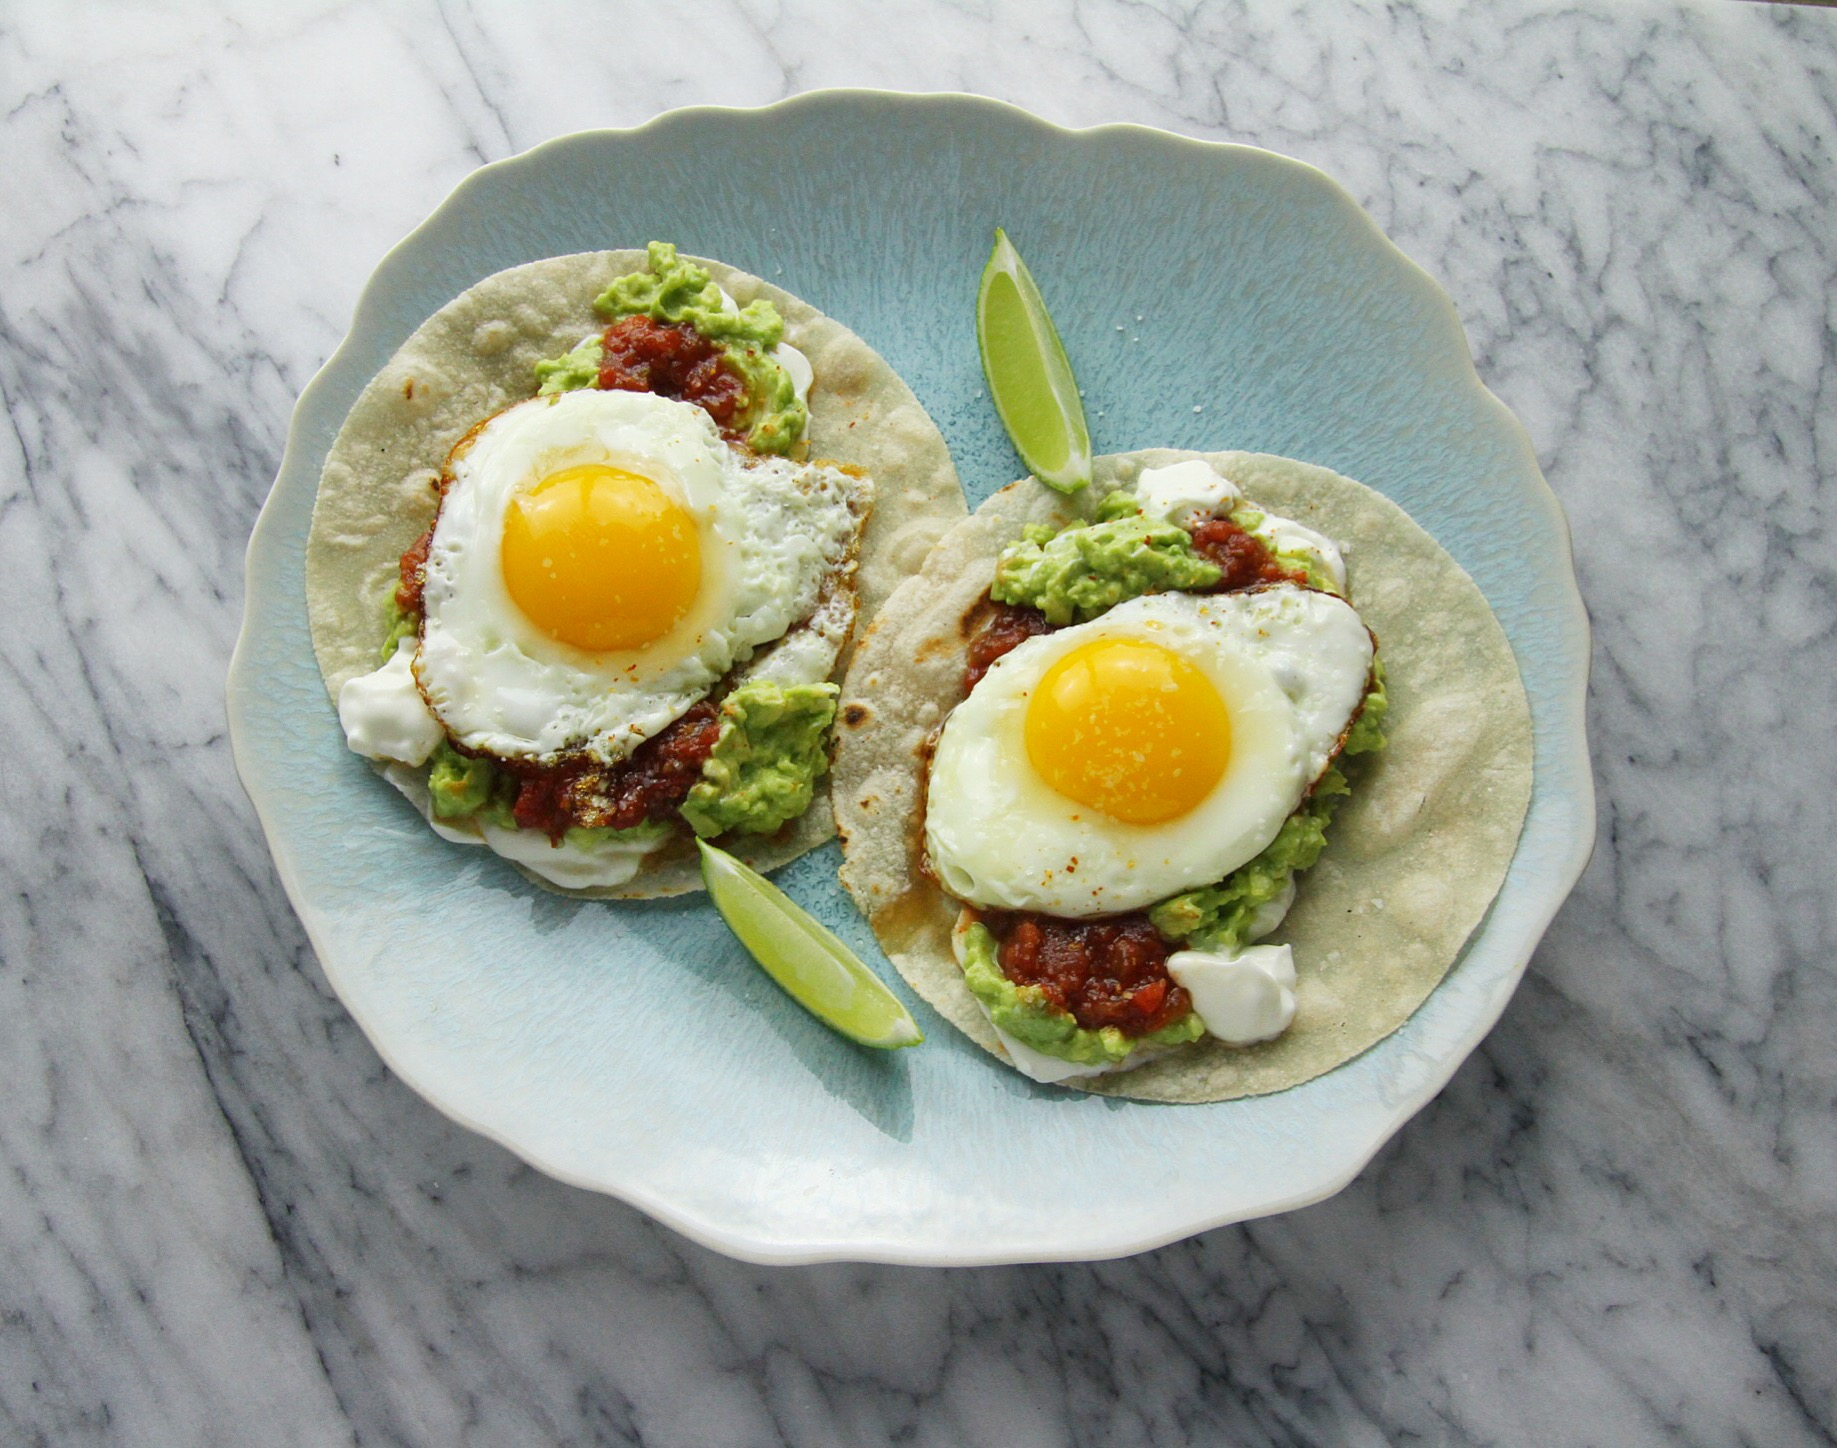 OH! I had time to make an awesome lunch during the snow day so I made these fabulous breakfast tacos. Filled with salsa, sour cream, and homemade guacamole, I topped each one with a pretty-perfect sunny-side-up egg. So delicious and messy, but so worth it. Tip: I made my tacos on Siete Foods gluten free cassava flour tortillas. My new favorite!